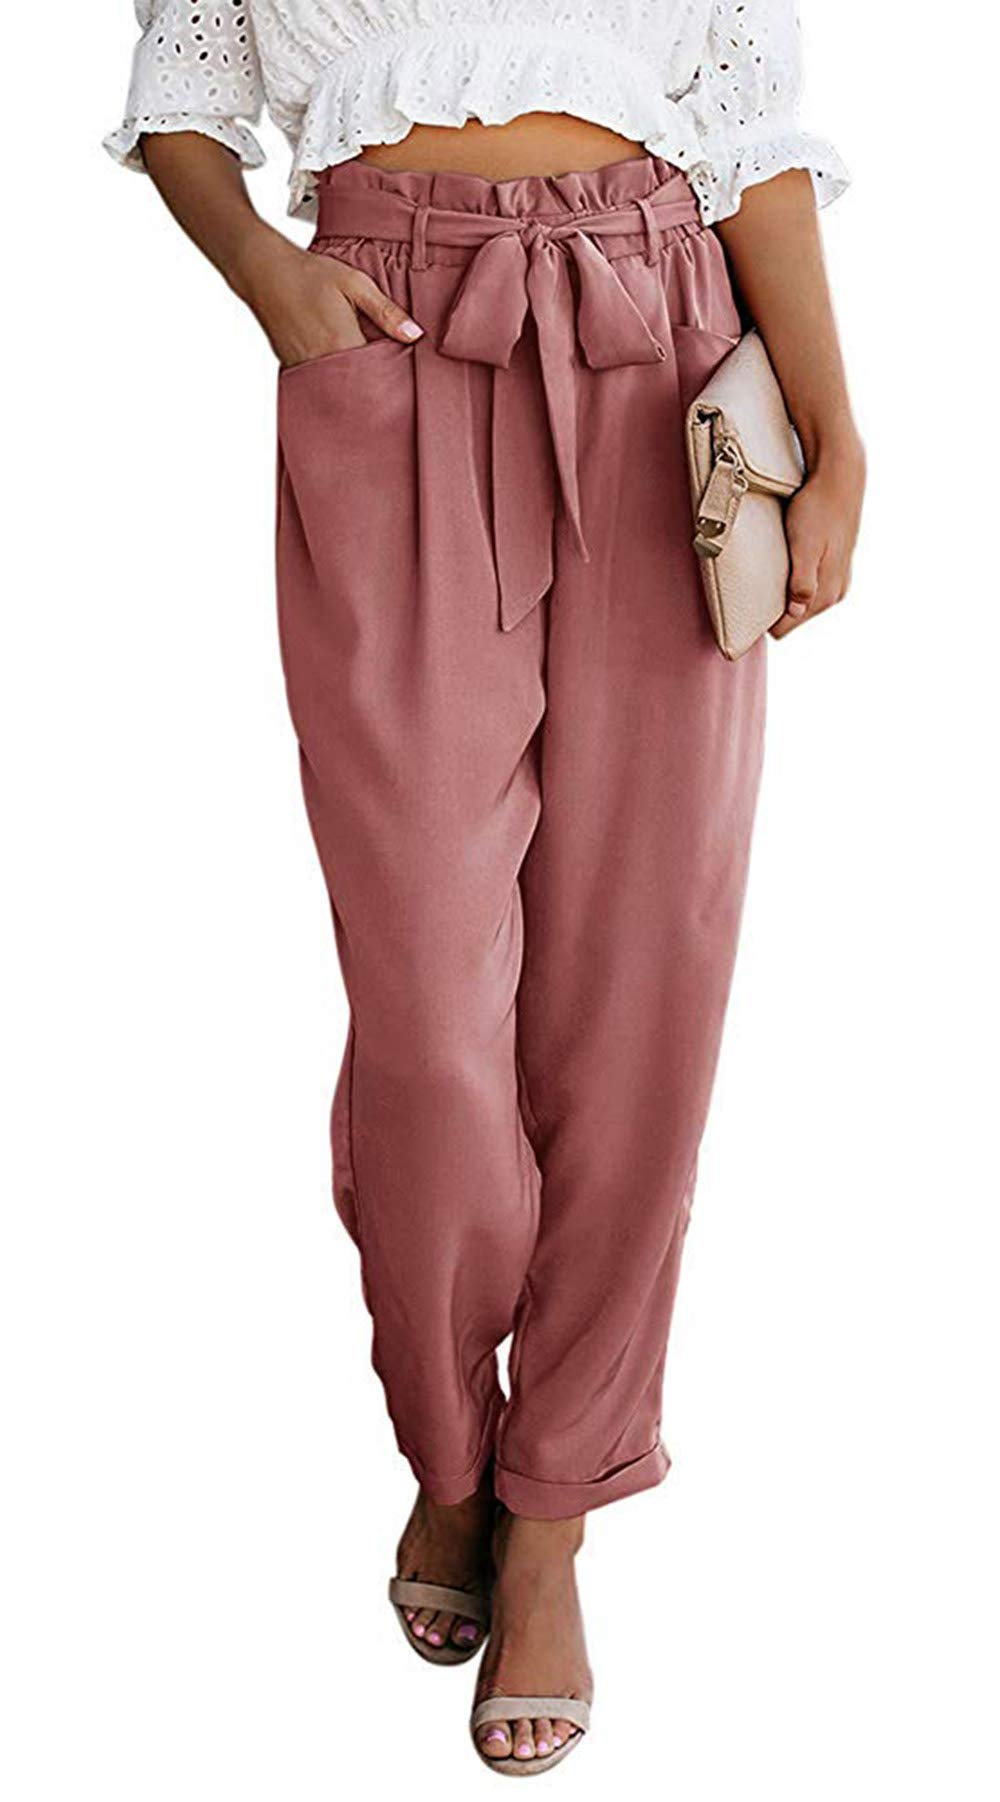 NEWFANGLE Women Paper Bag Pants Elastic High Waist Slim Casual Long Pants Cropped with Pockets,Pink,XL